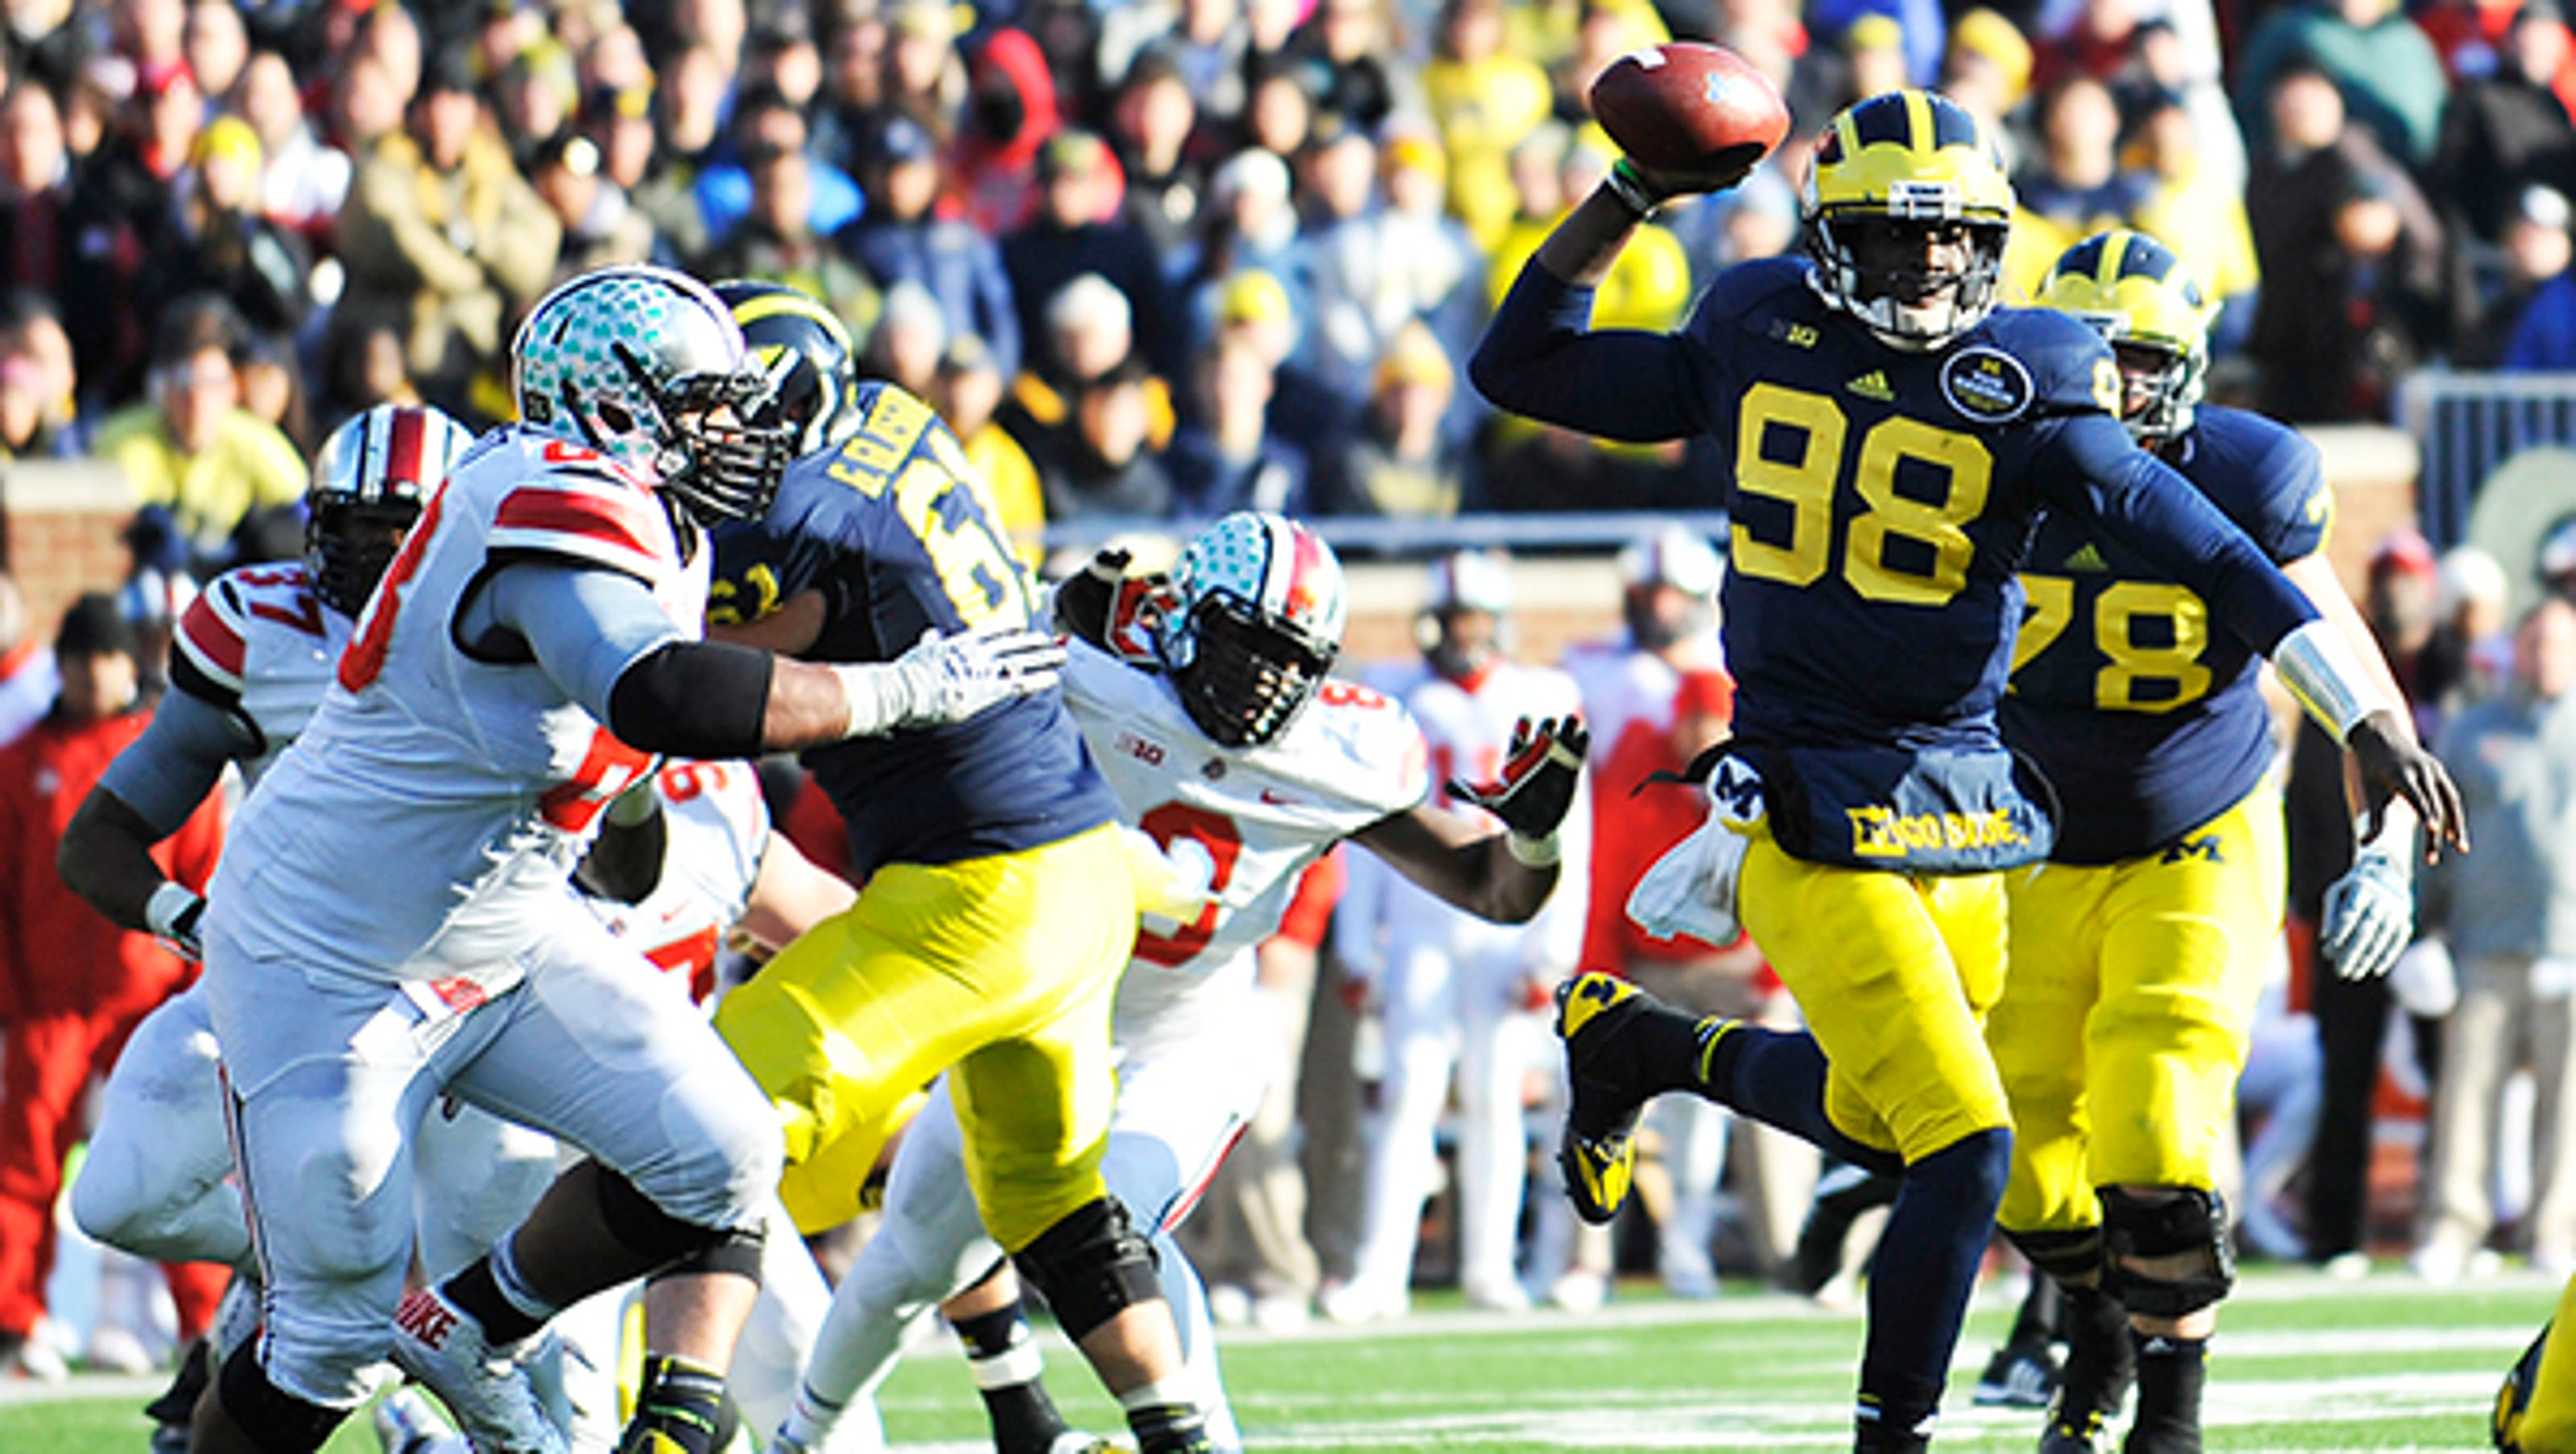 Hoke Meets With Hackett But Topic Is Ohio State Game